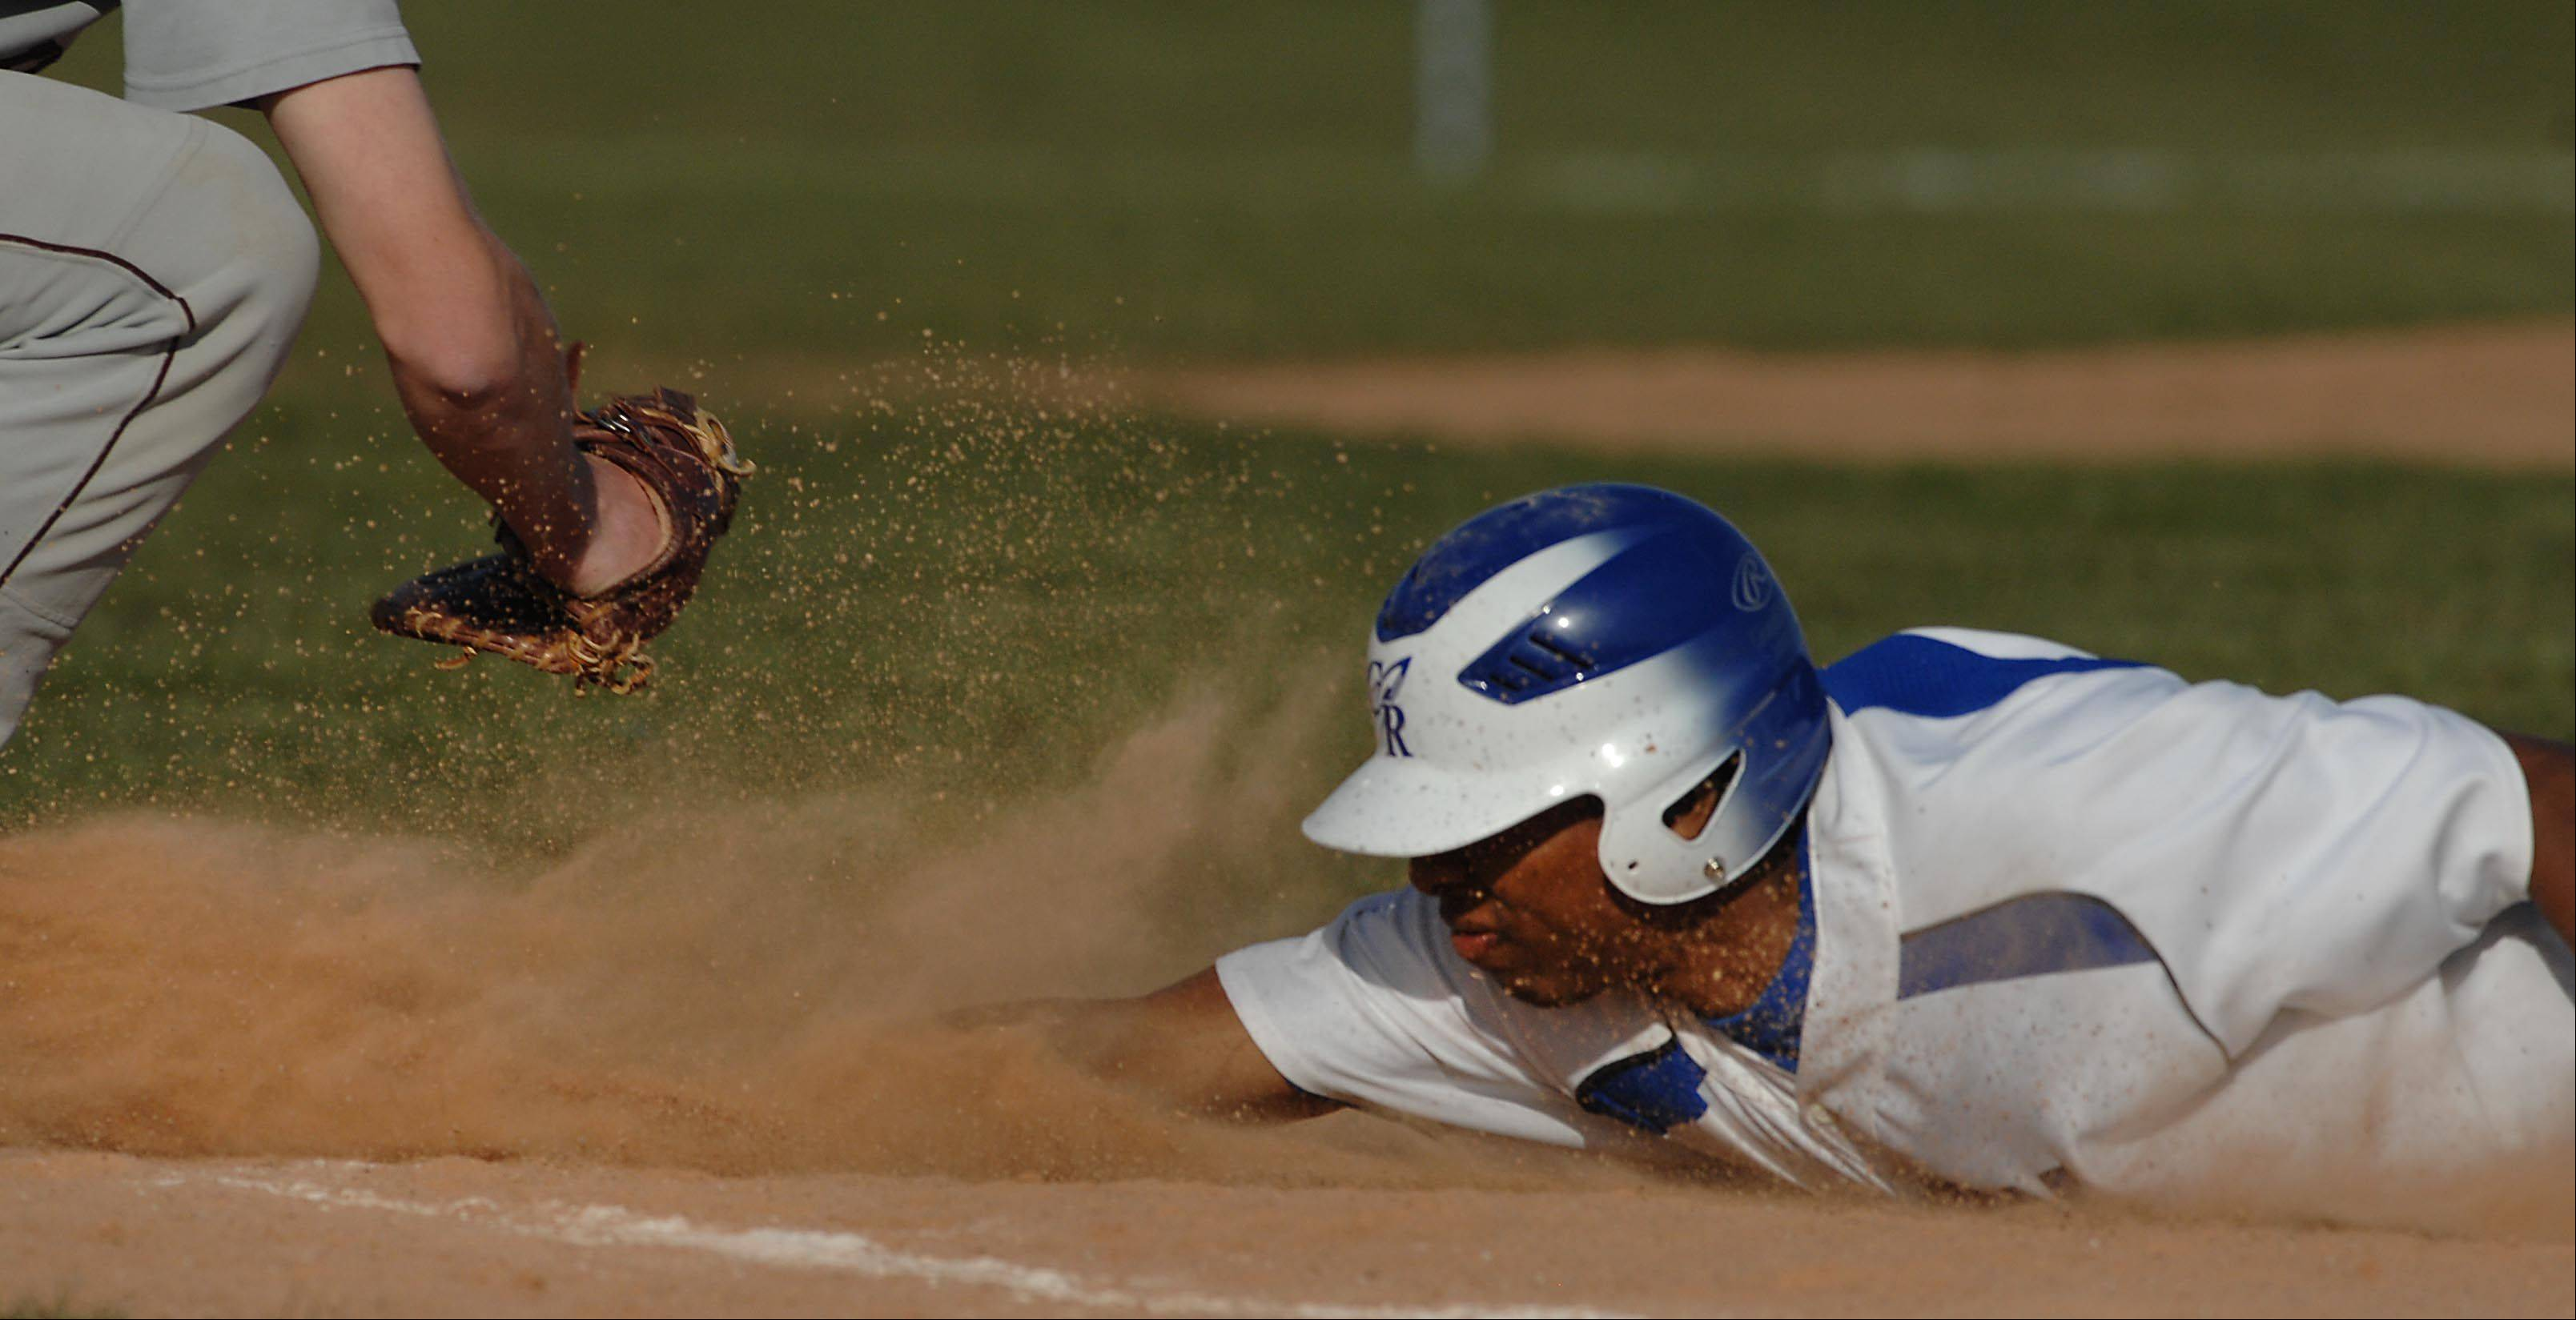 Burlington Central's Ray Hunnicutt dives safely back to first base before the throw from Marengo's Bobby Shute Thursday in Burlington. Hunnicutt later scored.